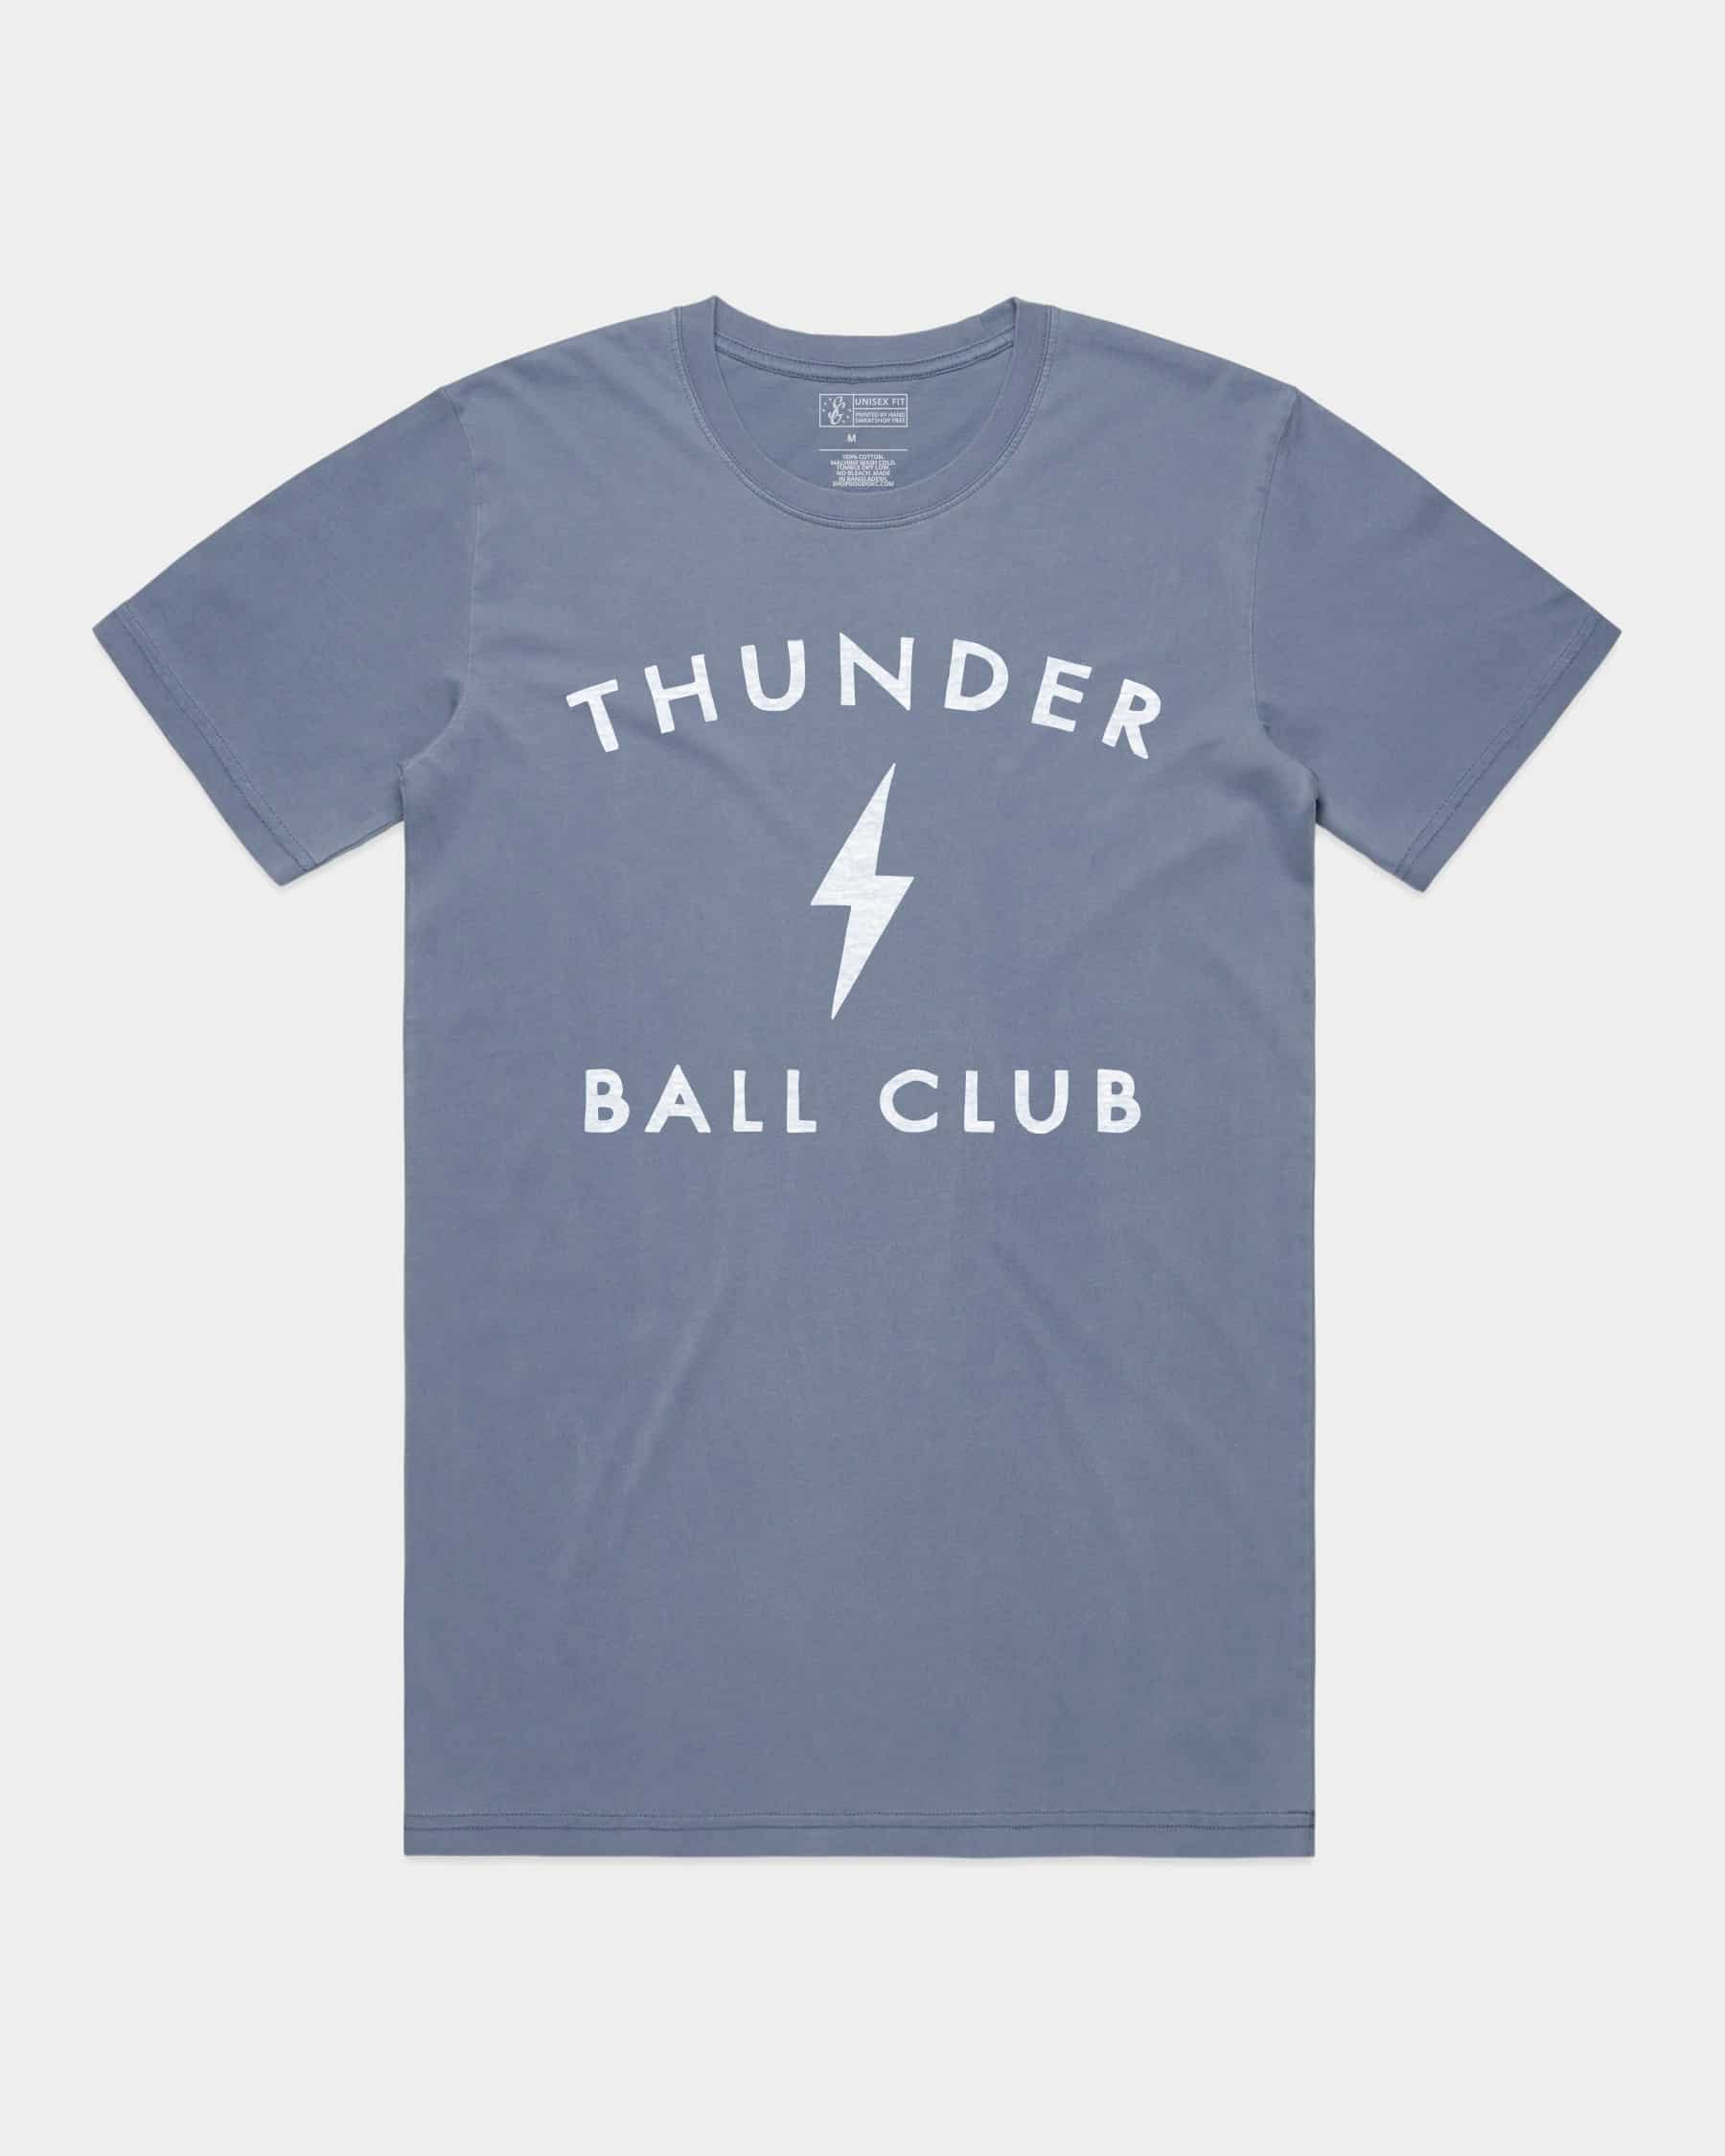 Thunder Ball Club Tee